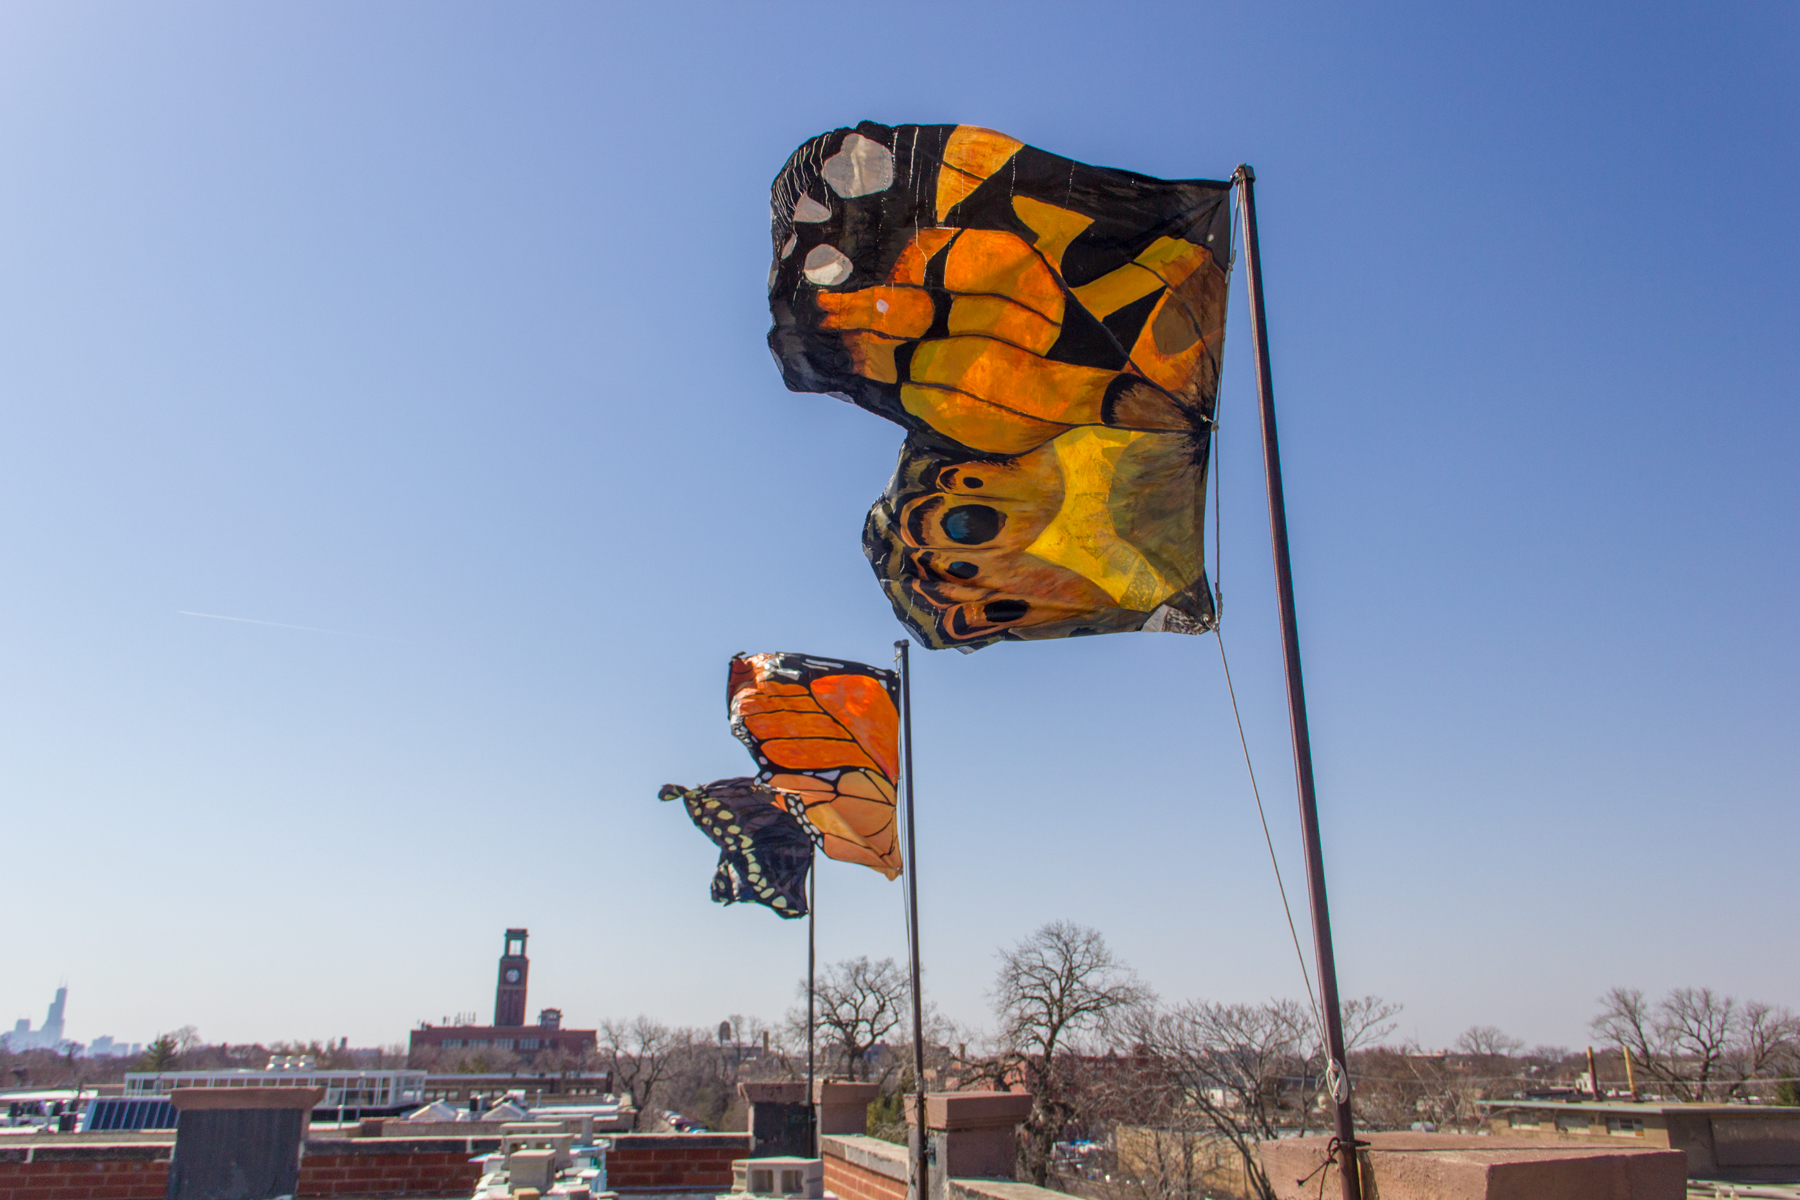 Three bright flags that look like butterfly wings flying on a rooftop